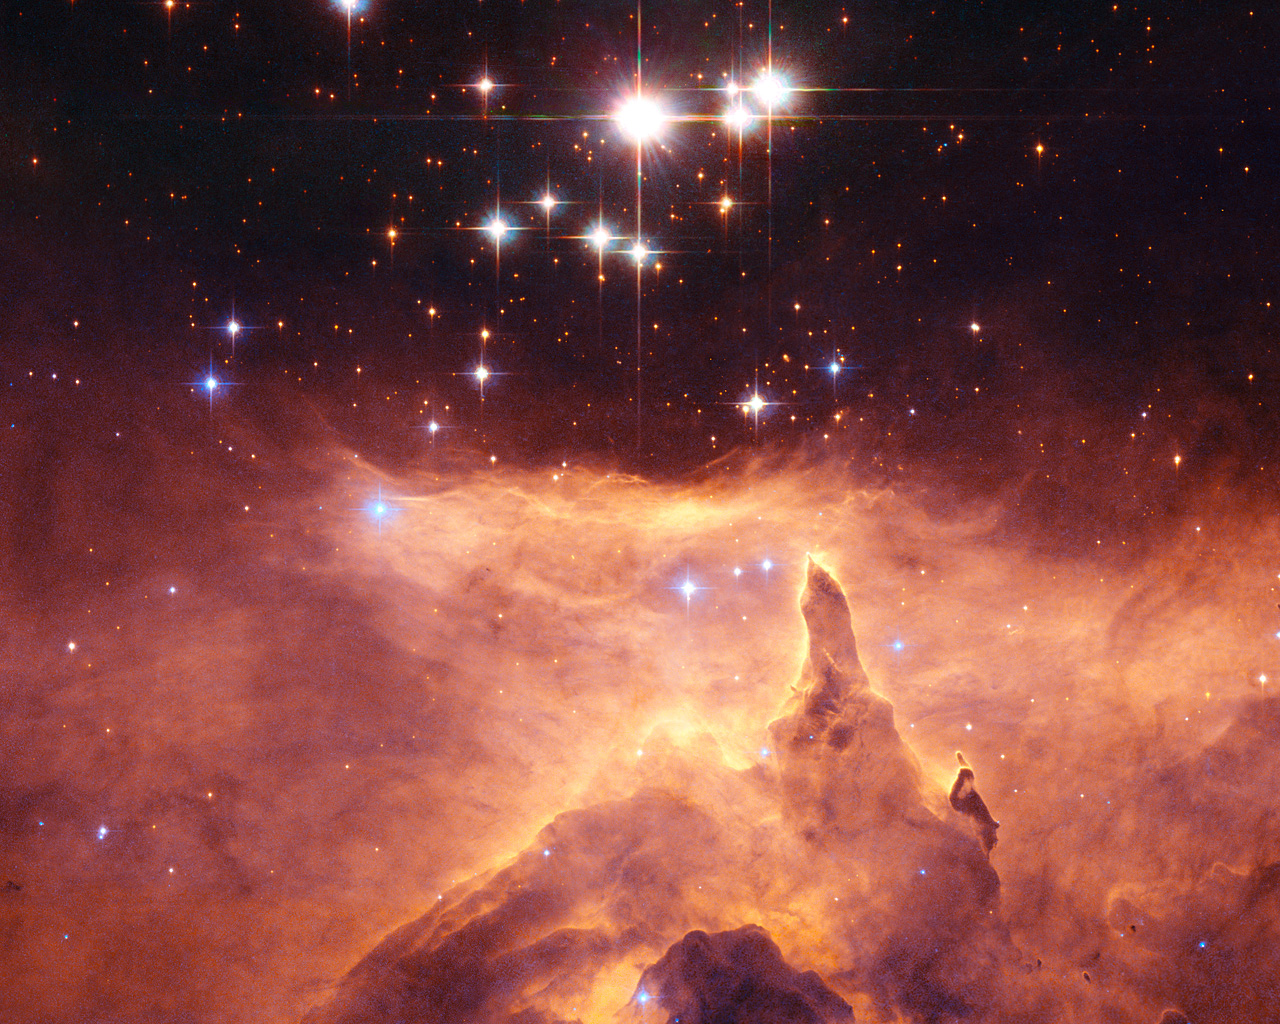 """The star cluster Pismis 24 lies in the core of the large emission nebula NGC 6357 that extends one degree on the sky in the direction of the Scorpius constellation. Part of the nebula is ionised by the youngest (bluest) heavy stars in Pismis 24. The intense ultraviolet radiation from the blazing stars heats the gas surrounding the cluster and creates a bubble in NGC 6357. The presence of these surrounding gas clouds makes probing into the region even harder. One of the top candidates for the title of """"Milky Way stellar heavyweight champion"""" was, until now, Pismis 24-1, a bright young star that lies in the core of the small open star cluster Pismis 24 (the bright stars in the Hubble image) about 8,000 light-years away from Earth. Pismis 24-1 was thought to have an incredibly large mass of 200 to 300 solar masses. New NASA/ESA Hubble measurements of the star, have, however, resolved Pismis 24-1 into two separate stars, and, in doing so, have """"halved"""" its mass to around 100 solar masses."""